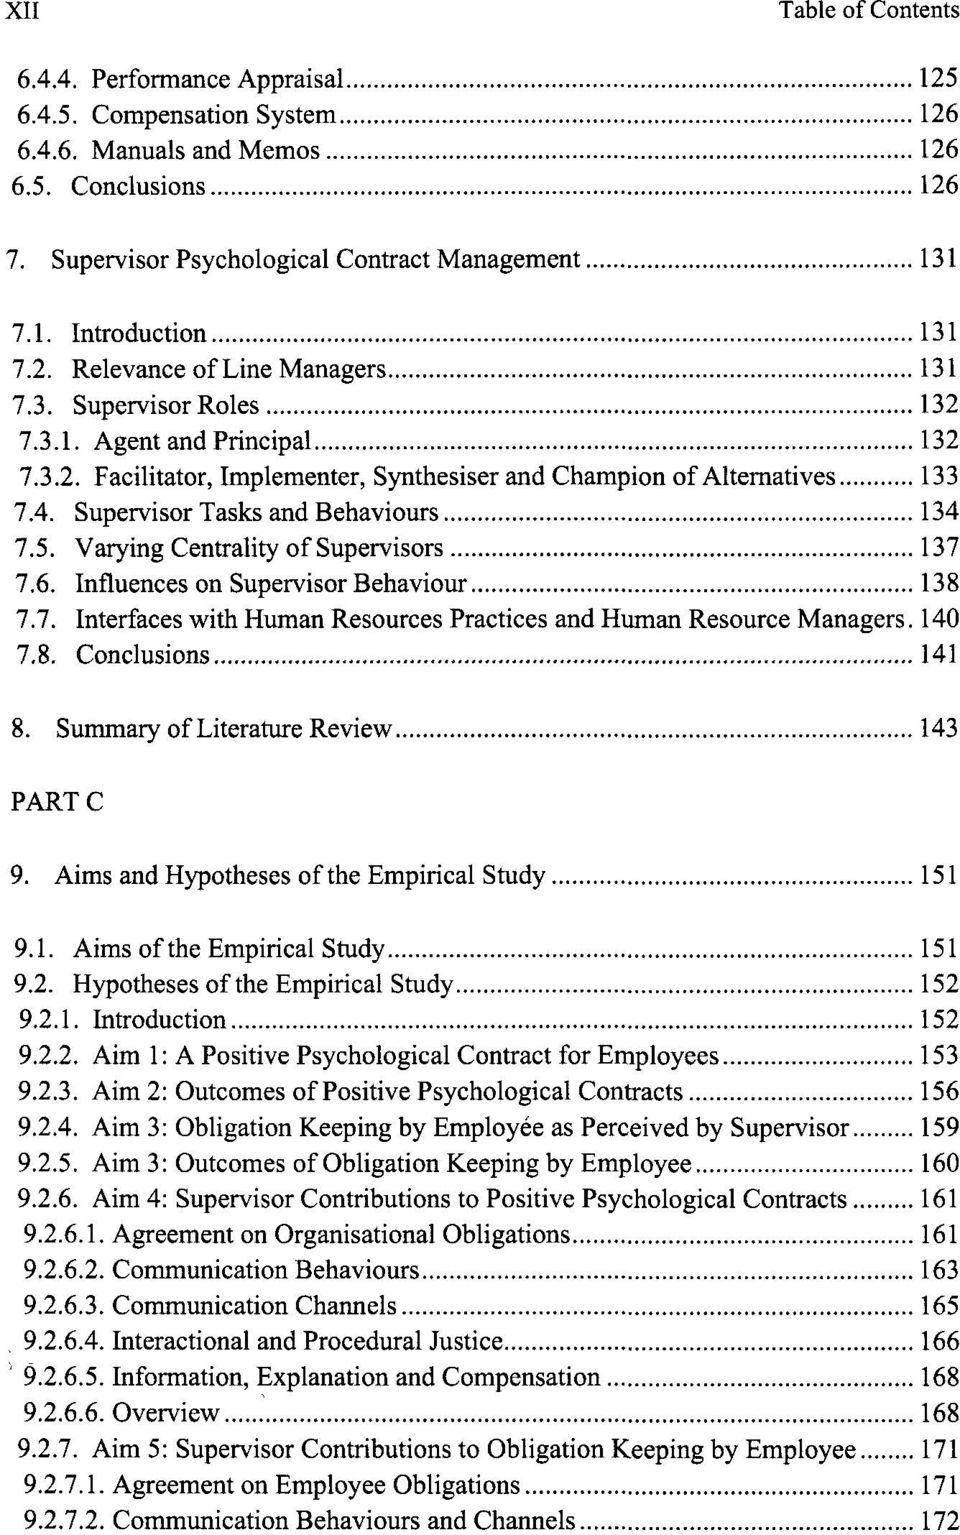 Supervisor Tasks and Behaviours 134 7.5. Varying Centrality of Supervisors 137 7.6. Influences on Supervisor Behaviour 138 7.7. Interfaces with Human Resources Practices and Human Resource Managers.